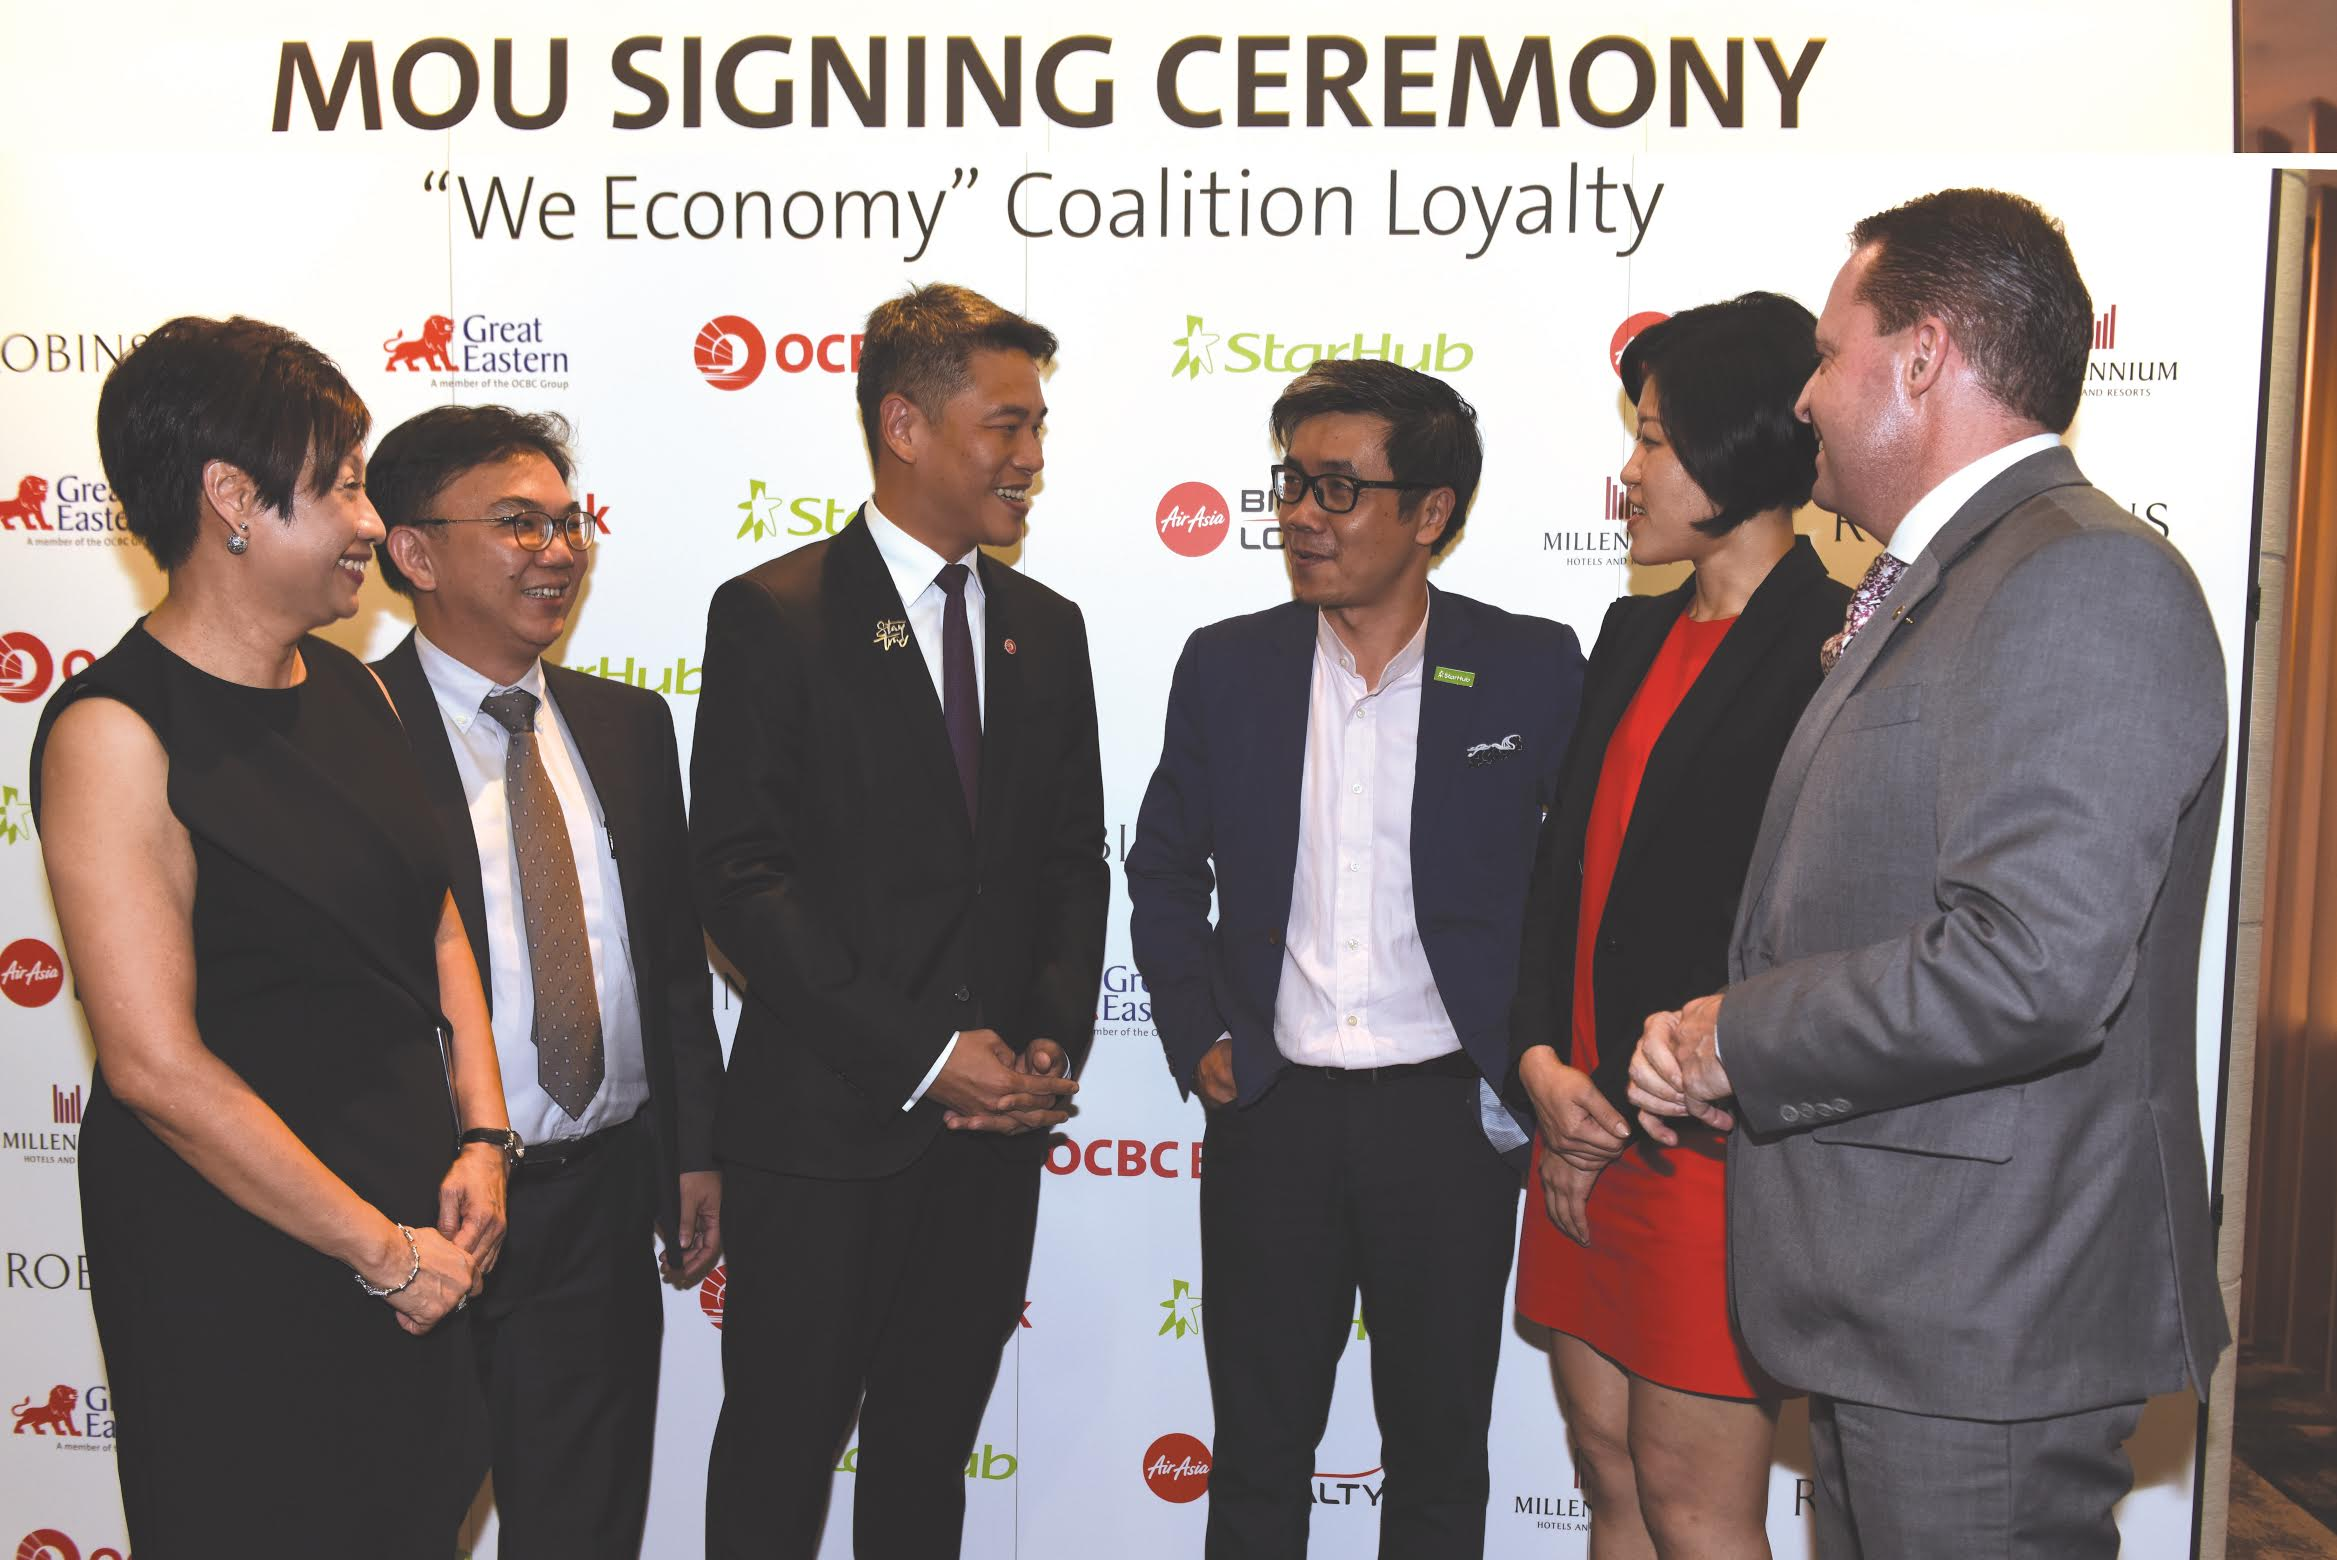 Photo courtesy: OCBC